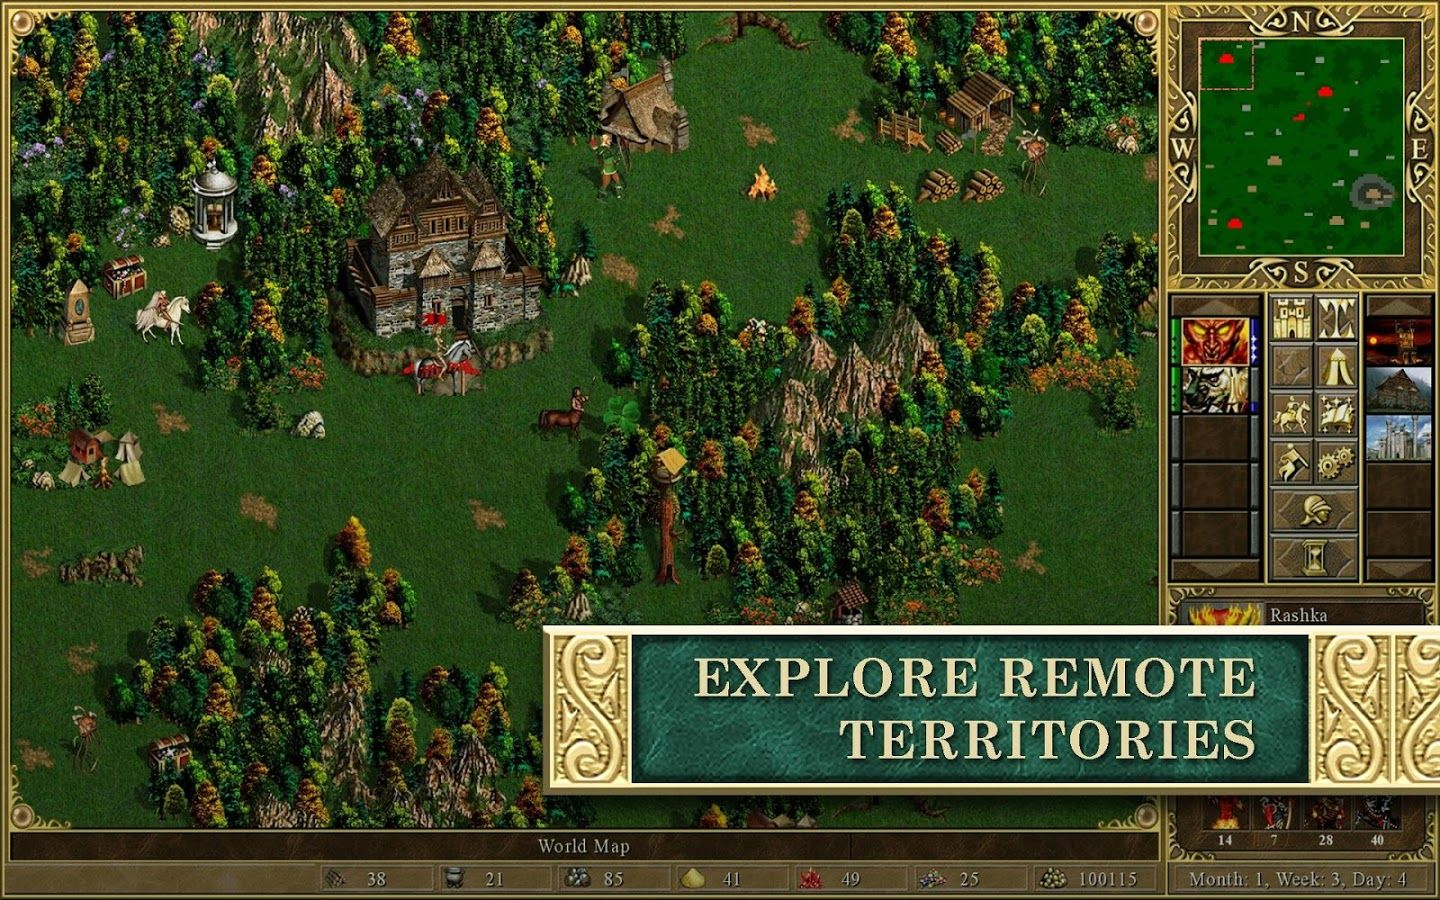 Heroes Of Might And Magic 3 Hd Mod Apk Free Download With Images